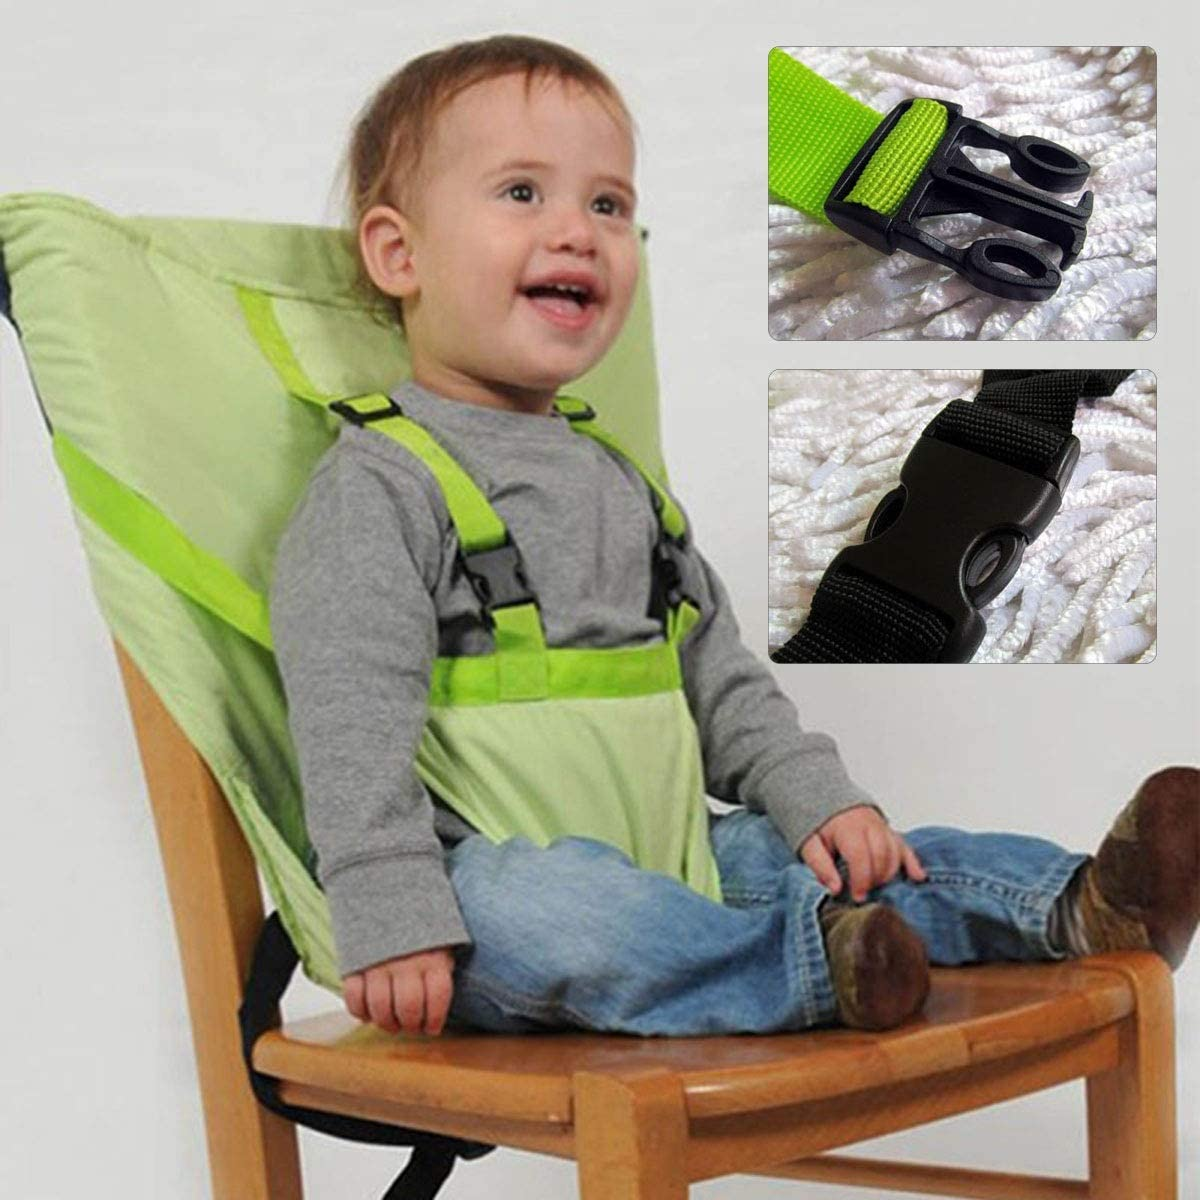 Color : Orange Foldable Baby Feeding seat Safety Belt Infant High Chair Cover Safety Harness for Travel Dinning